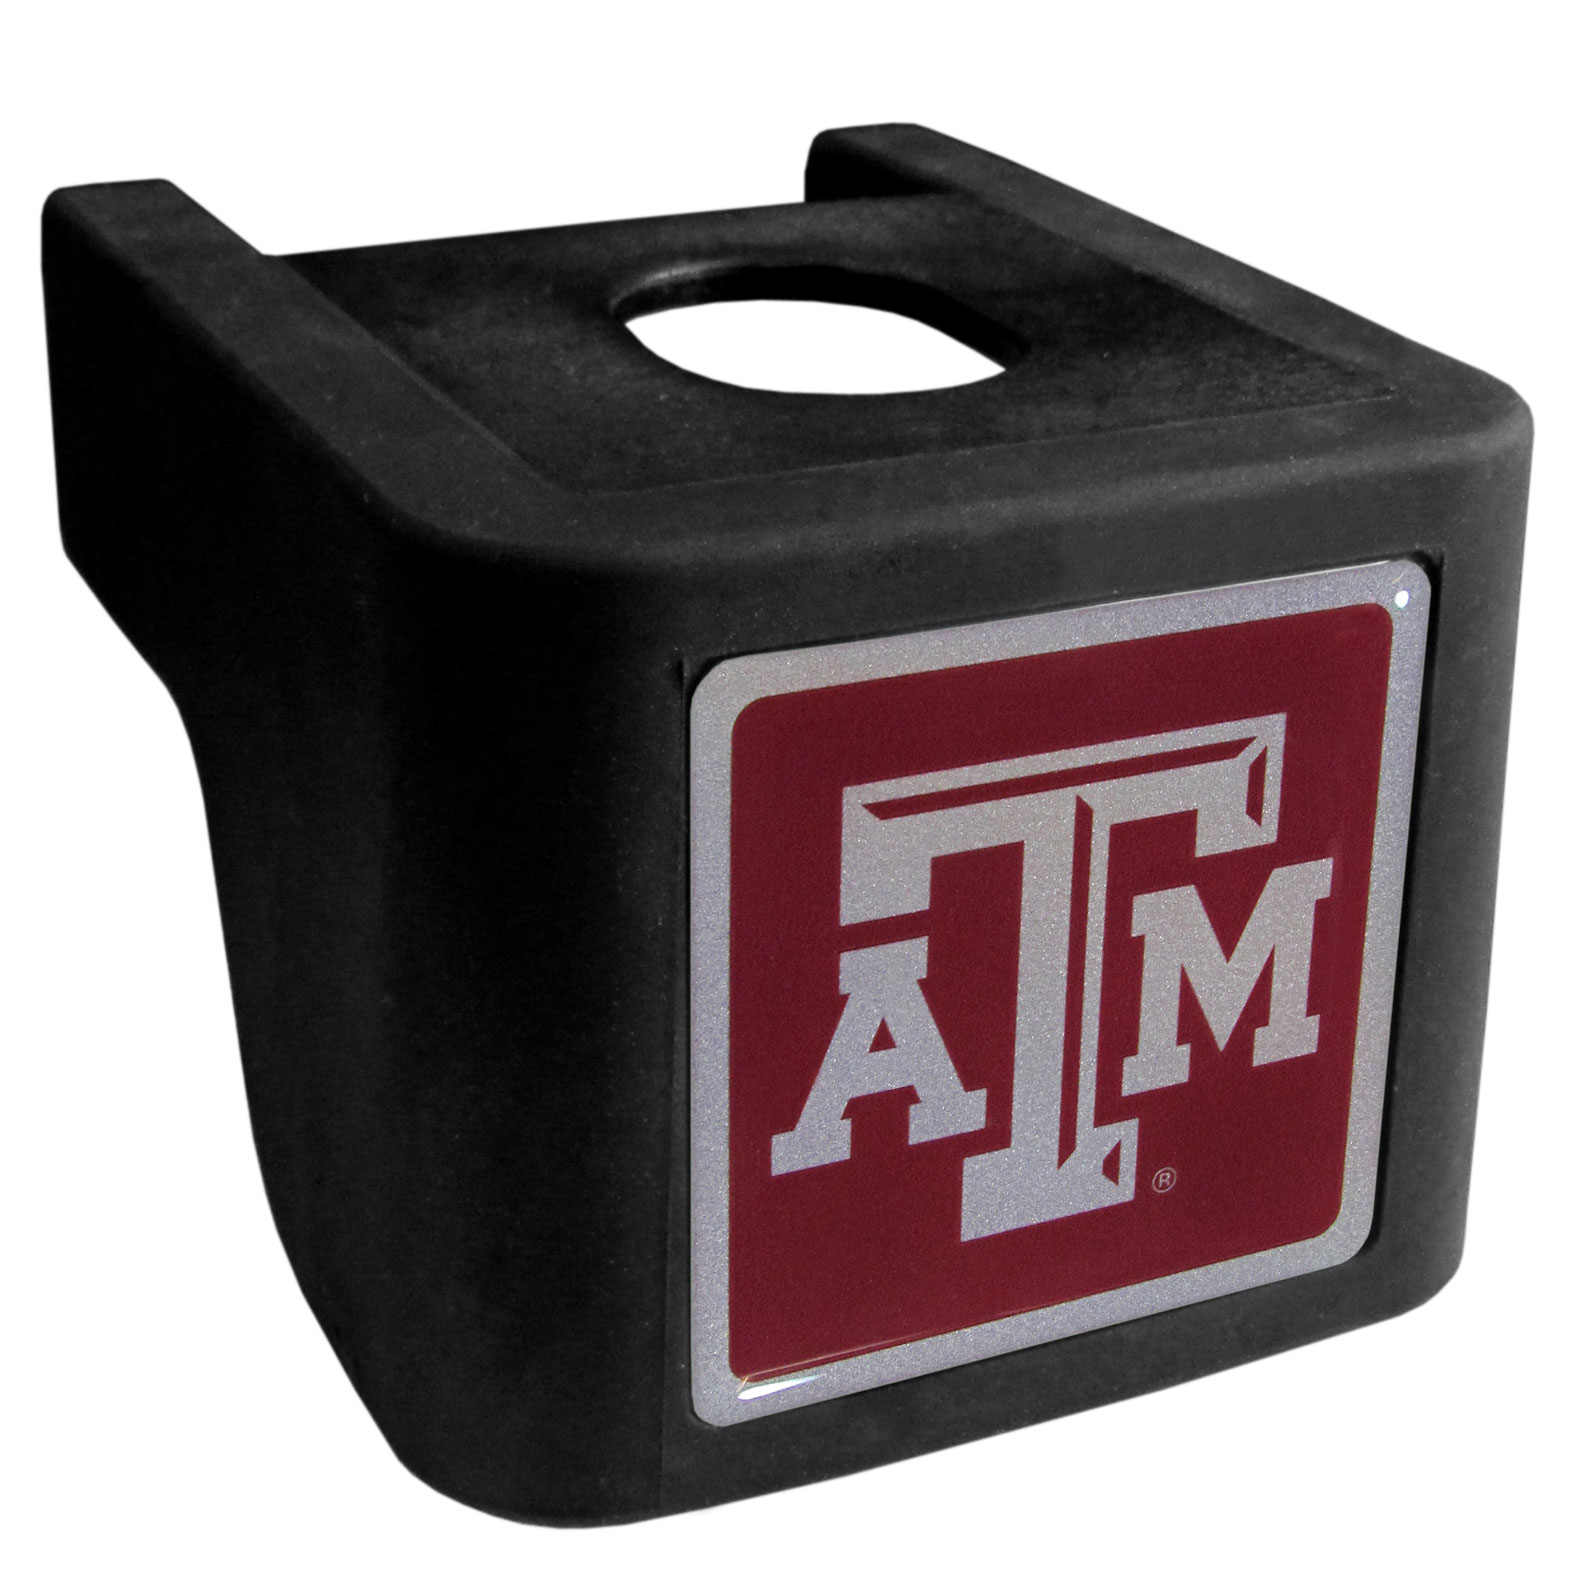 Texas A and M Aggies Shin Shield Hitch Cover - This unique hitch cover features a large Texas A & M Aggies logo. If you have ever hooked up a trailer or boat your have probably smashed your shins on the ball hitch a few times. This revolutionary shin shield hitch cover provides your much abused shins with the protection they deserve! The tough rubber hitch is rated to work with Class V hitch receivers hauling up to 17,000 gross trailer weight and 1,700 tongue weight allowing you to leave it on while hauling.